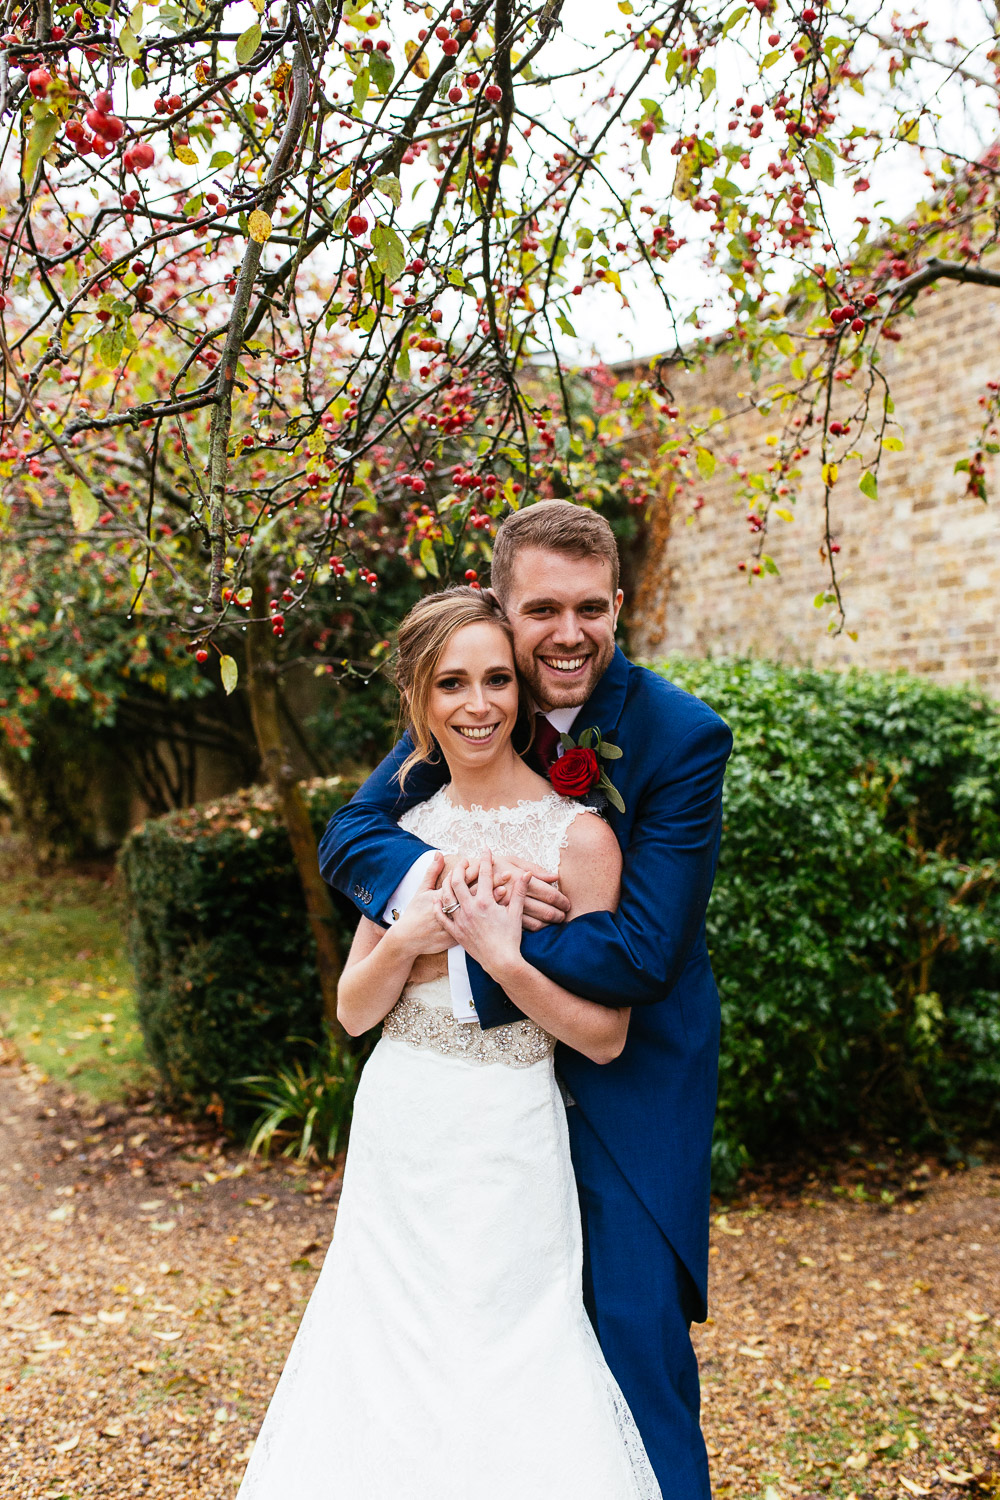 Matthew-and-Hannah-Wedding-Highlights-72.jpg